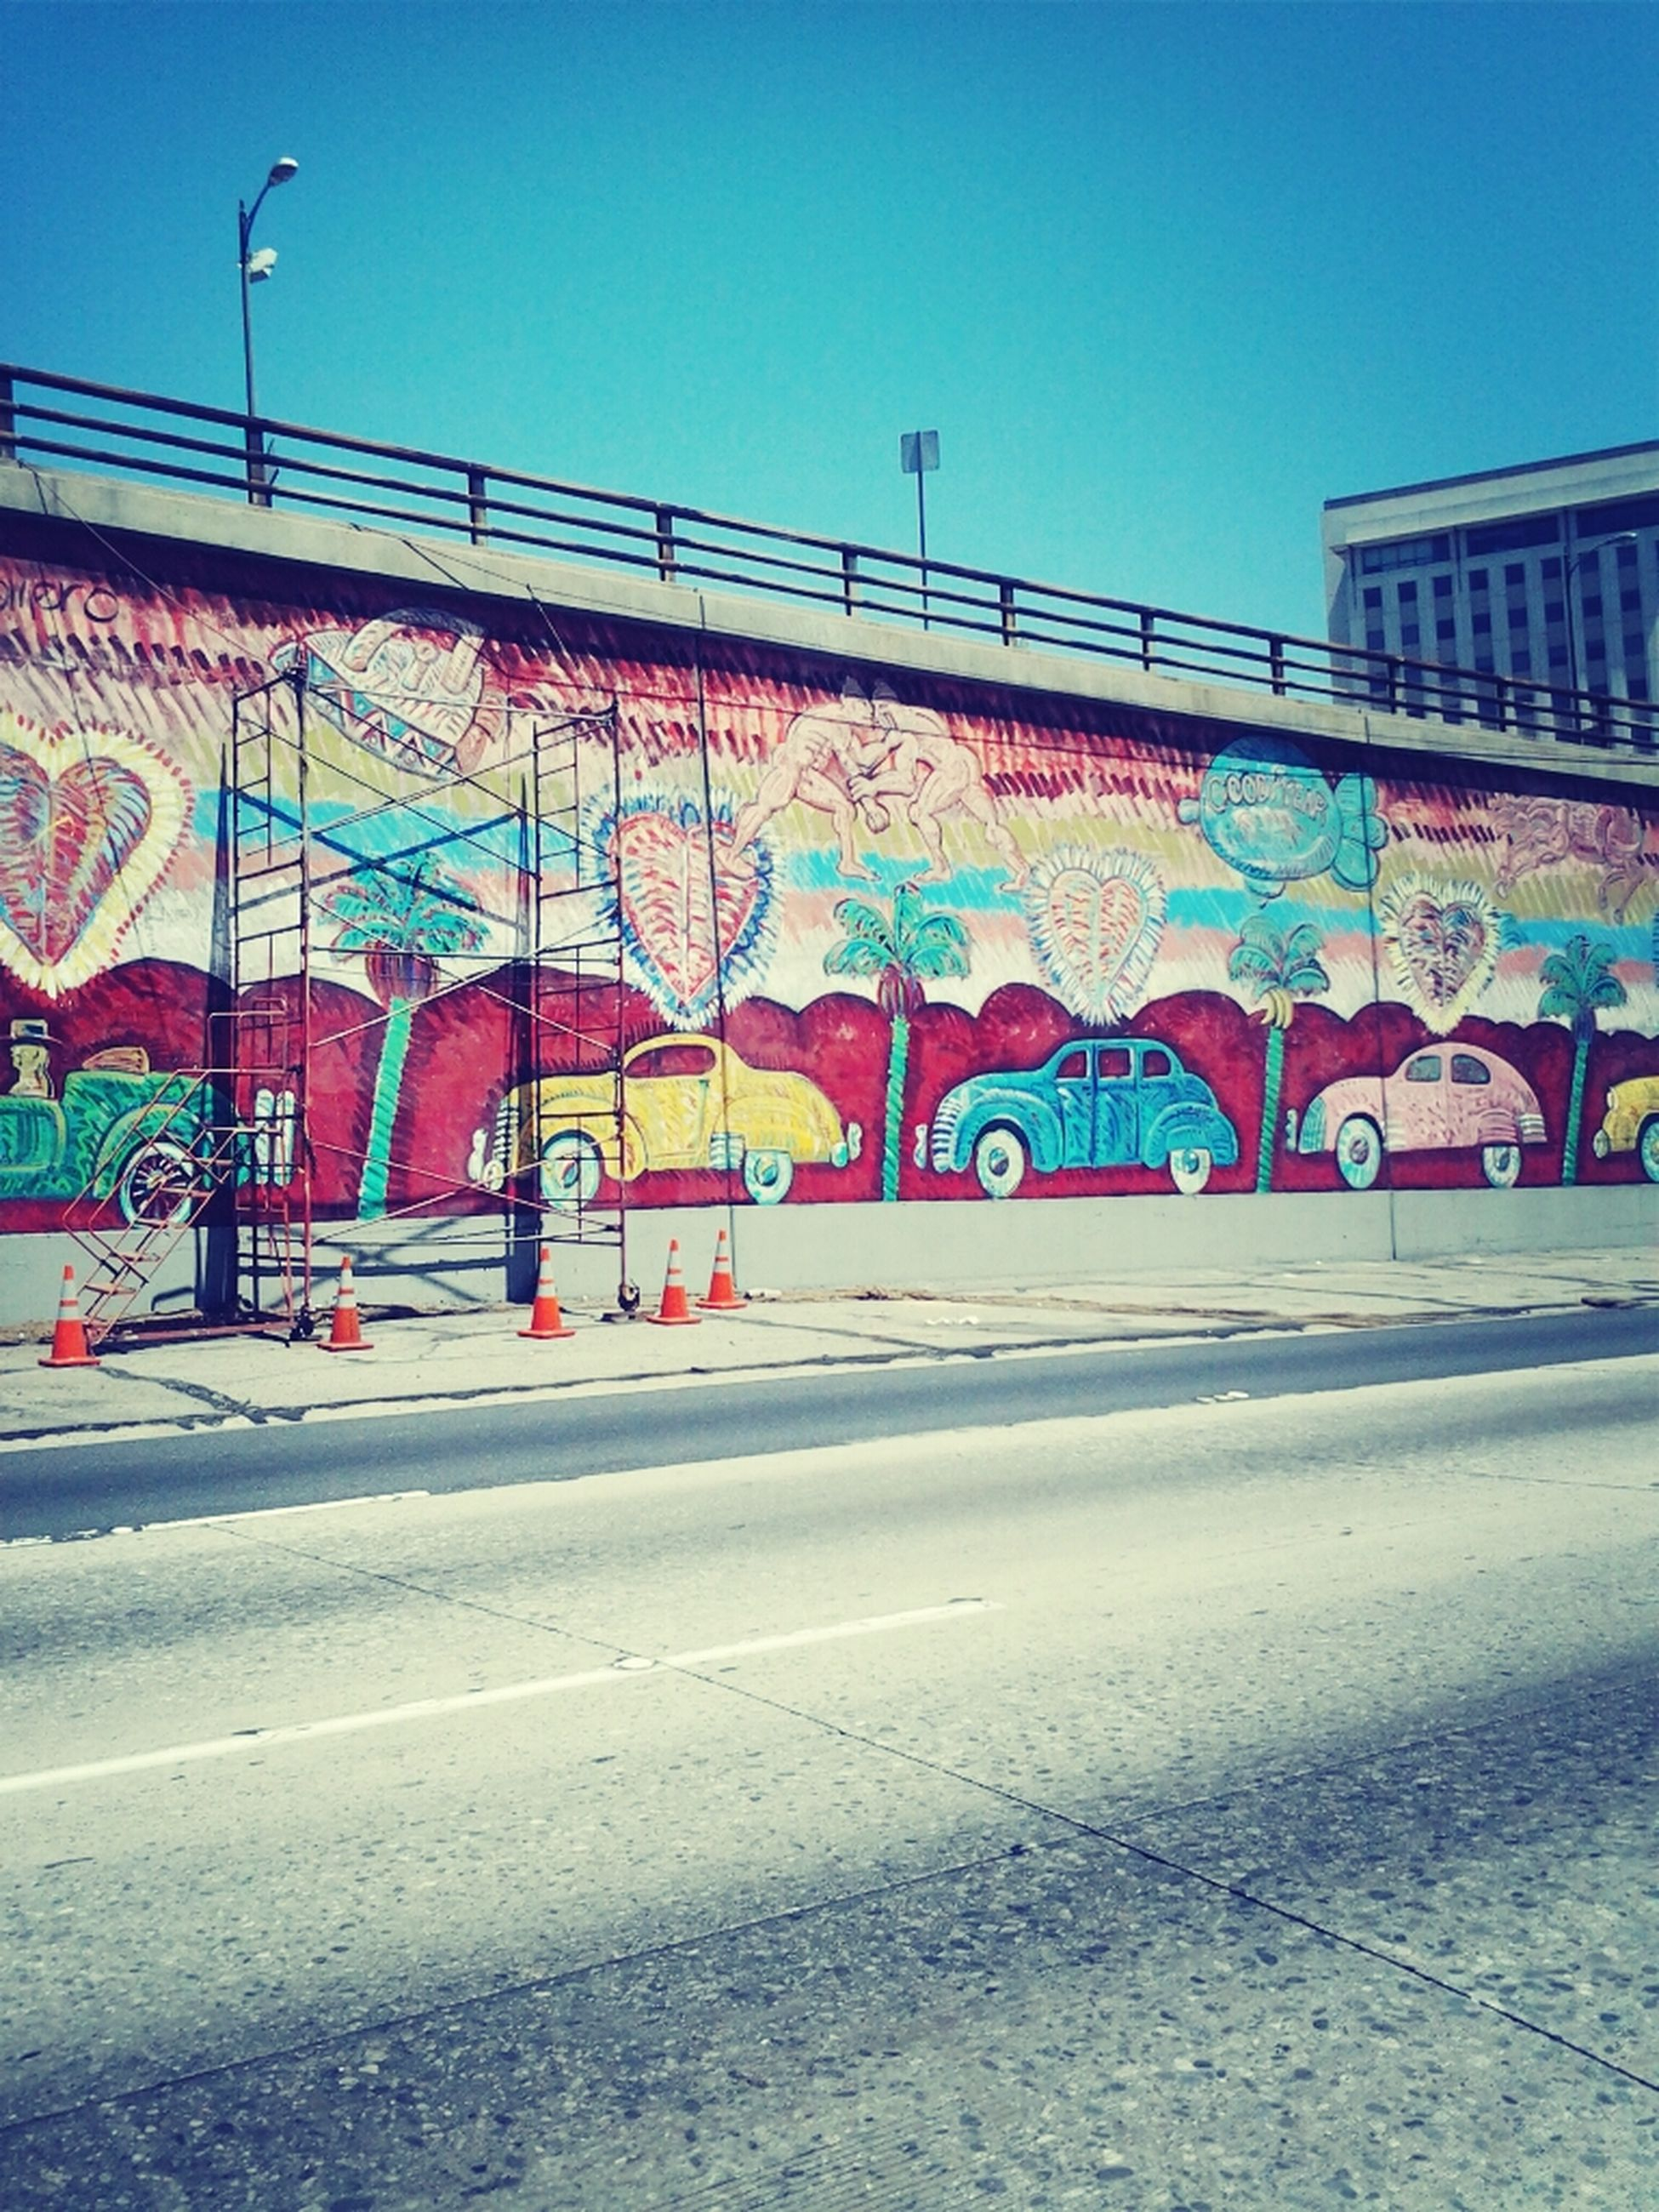 graffiti, art, creativity, art and craft, architecture, built structure, text, multi colored, street art, building exterior, human representation, wall - building feature, western script, blue, street, communication, road, outdoors, clear sky, transportation